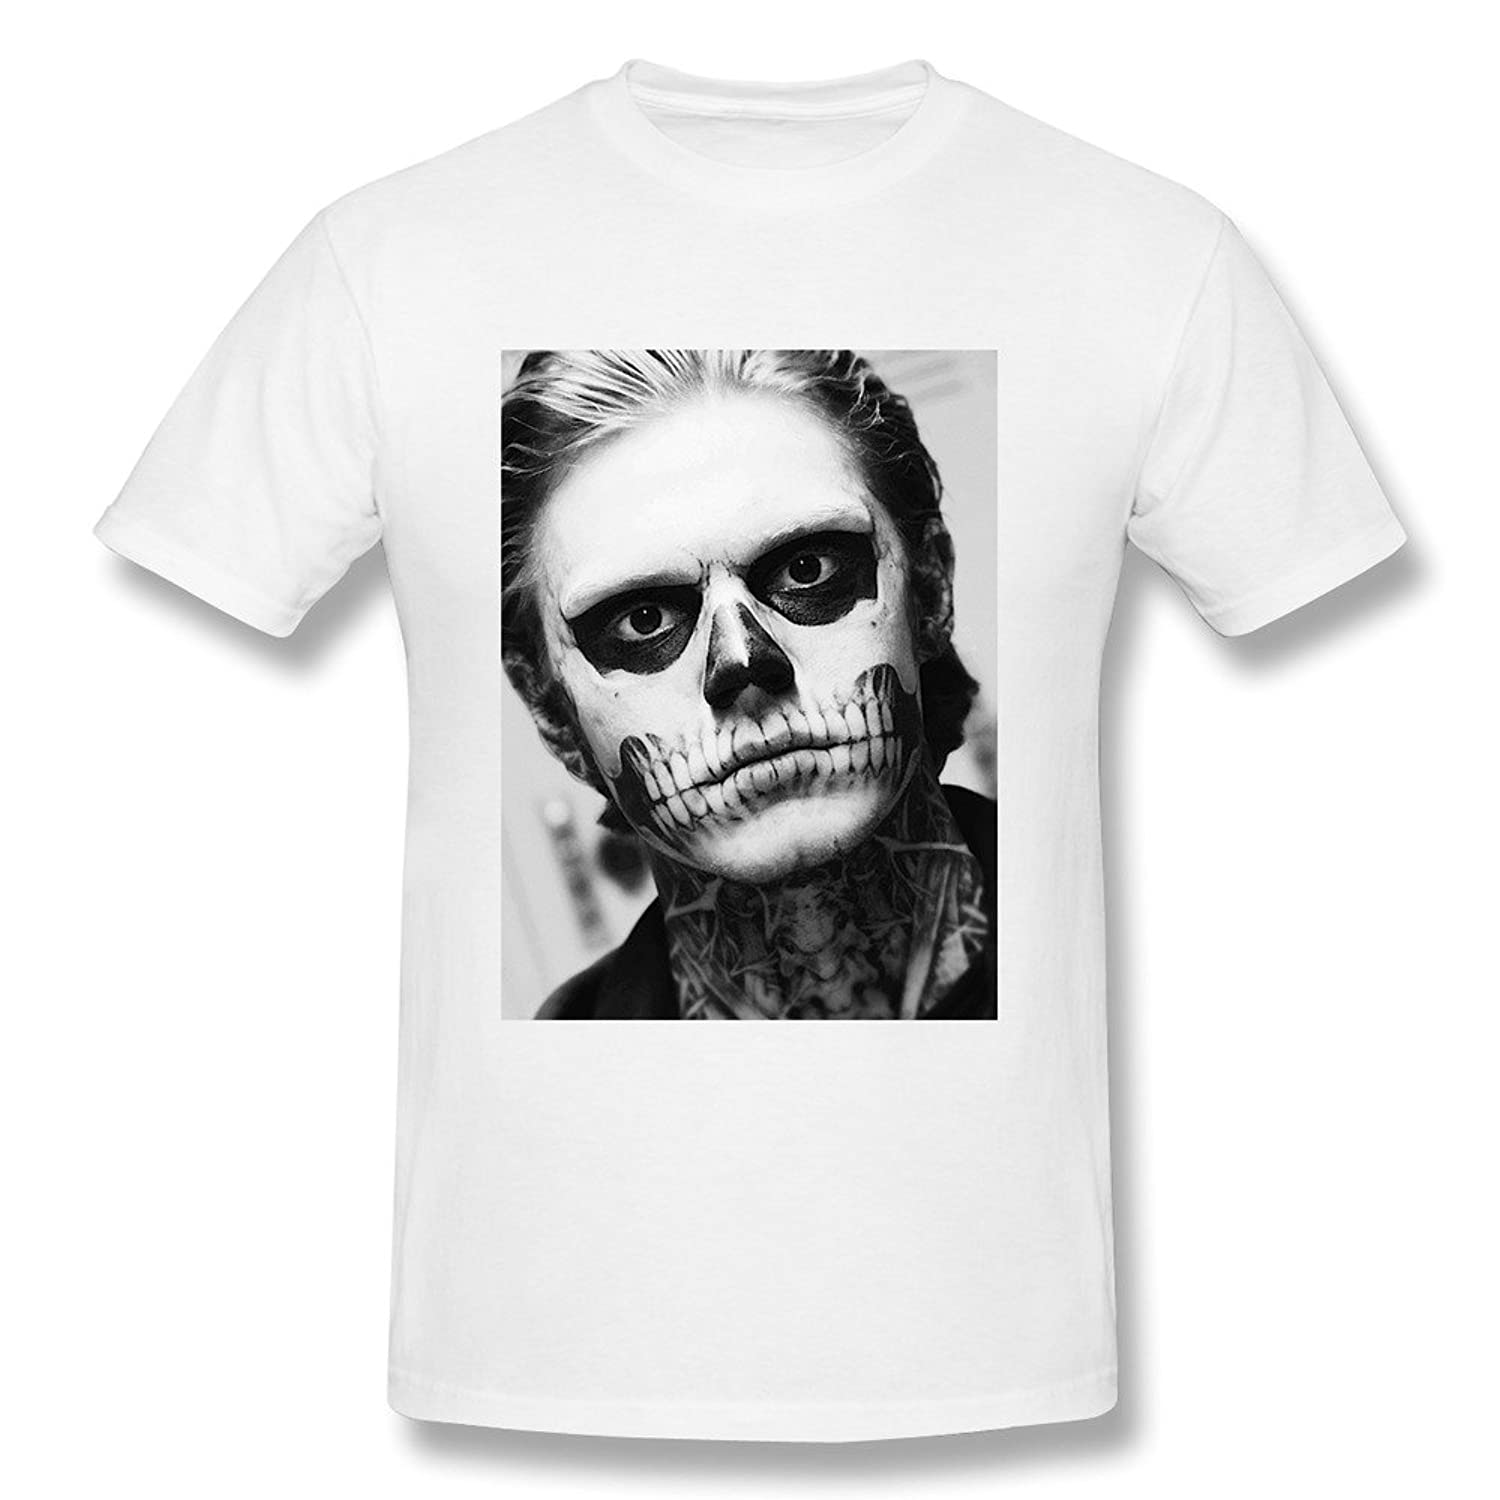 New Lifestyle Men's Evan Peters Short Sleeve Tshirts